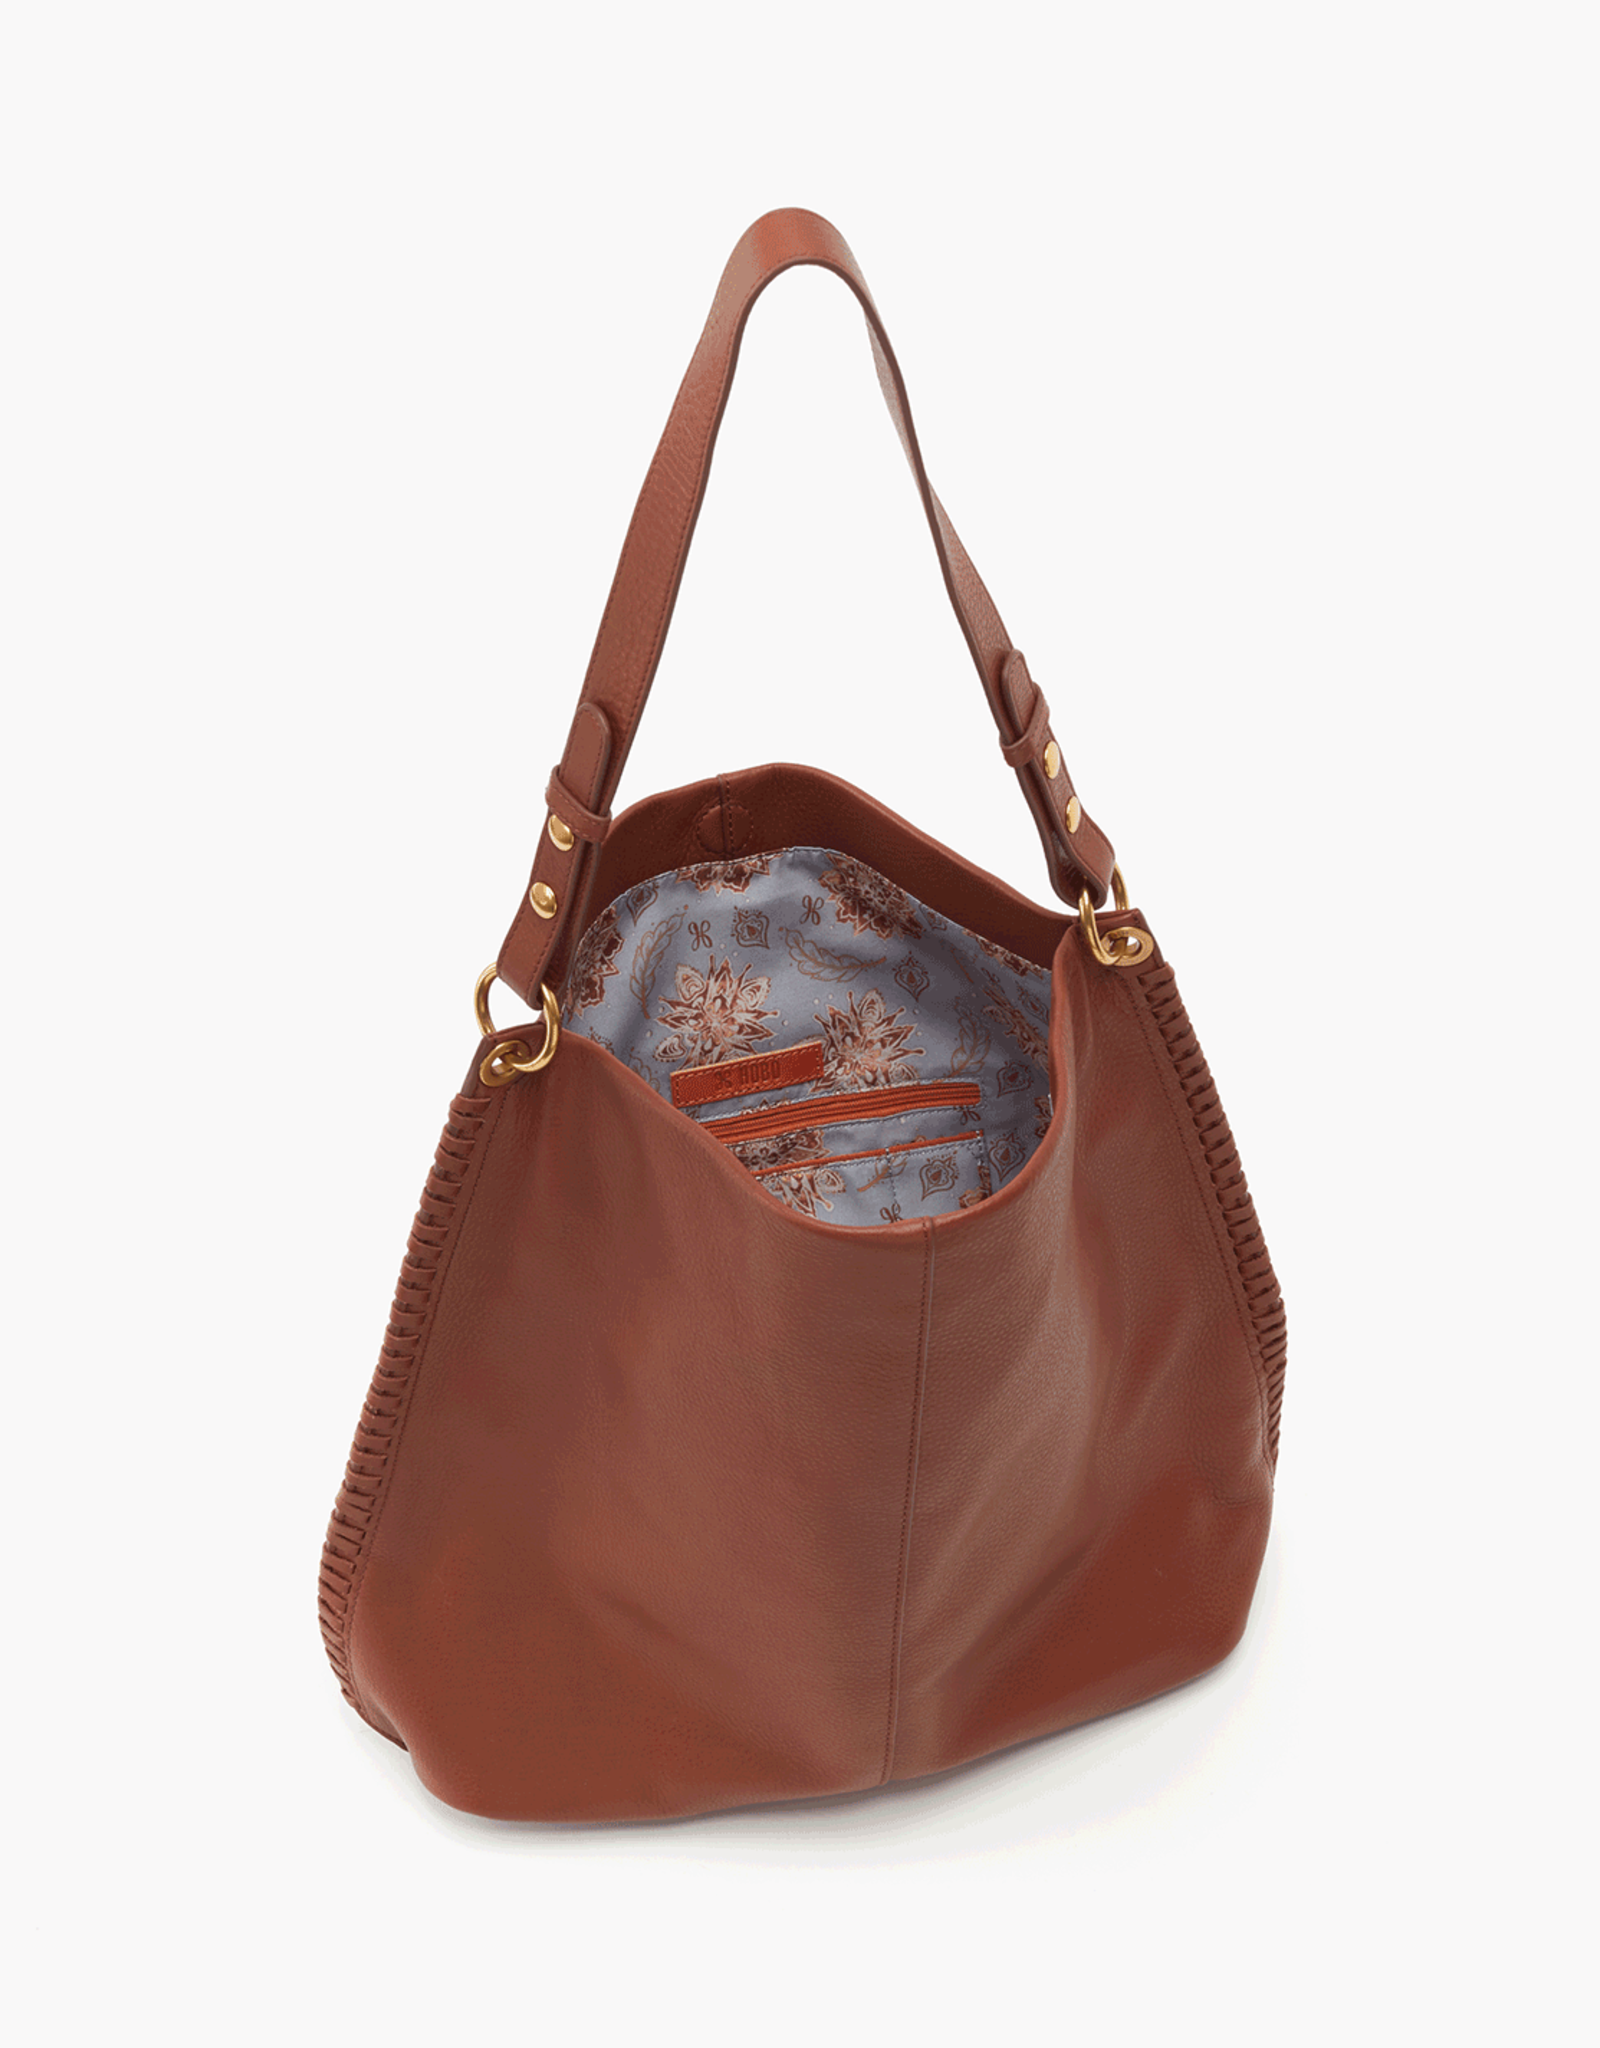 HOBO Moondance Hobo Bag